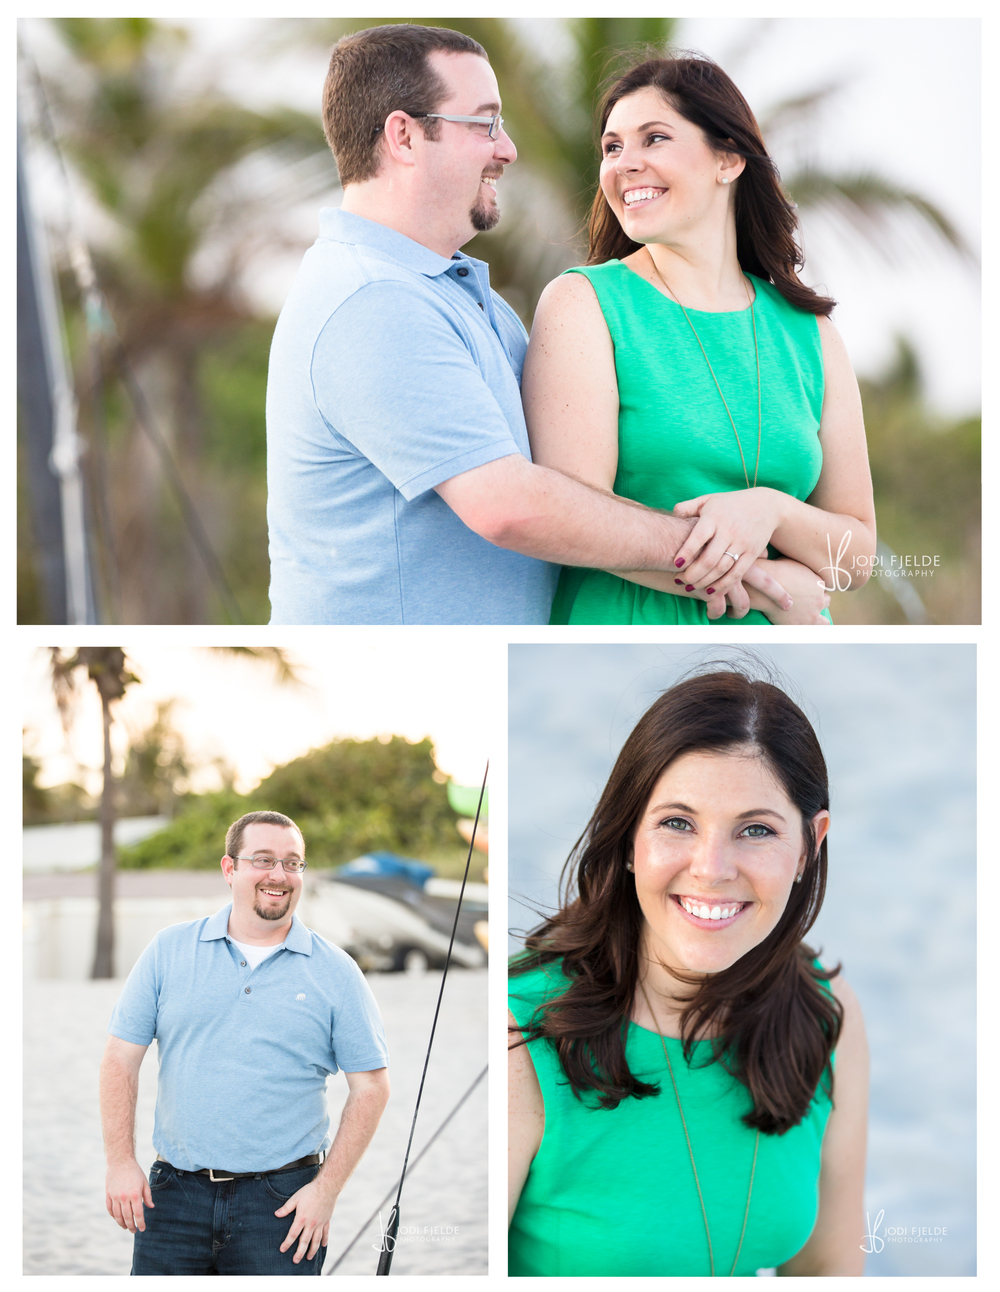 Delray_BEach_Sundy_HouseFlorida_engagement_E-session_Allison_&_Matt_photography_jodi_Fjelde_photography_9.jpg